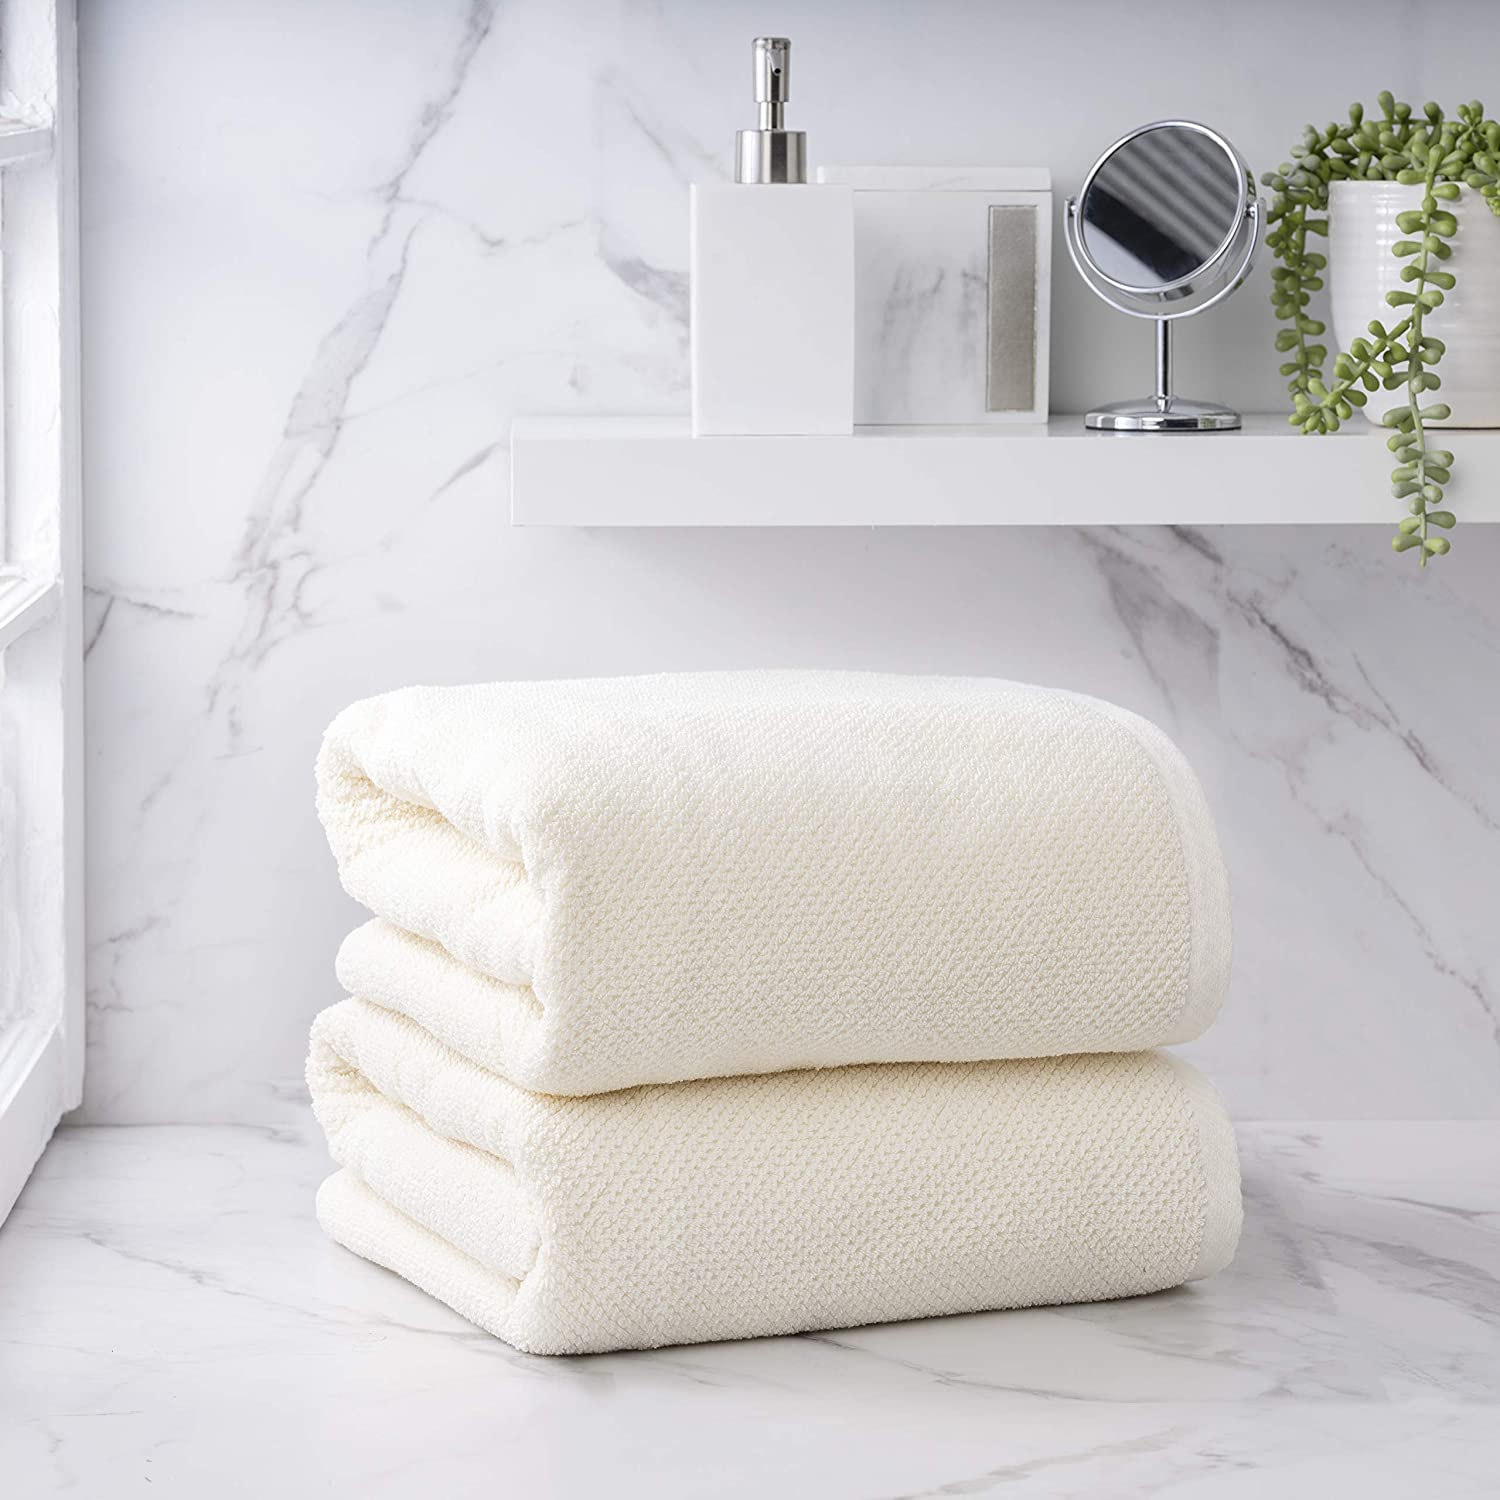 Welhome Franklin Premium 100% Cotton 2 Piece Bath Sheets   Cream   Popcorn Textured   Highly Absorbent   Durable   Low Lint   Hotel & Spa Bathroom Towels   600 GSM   Machine Washable